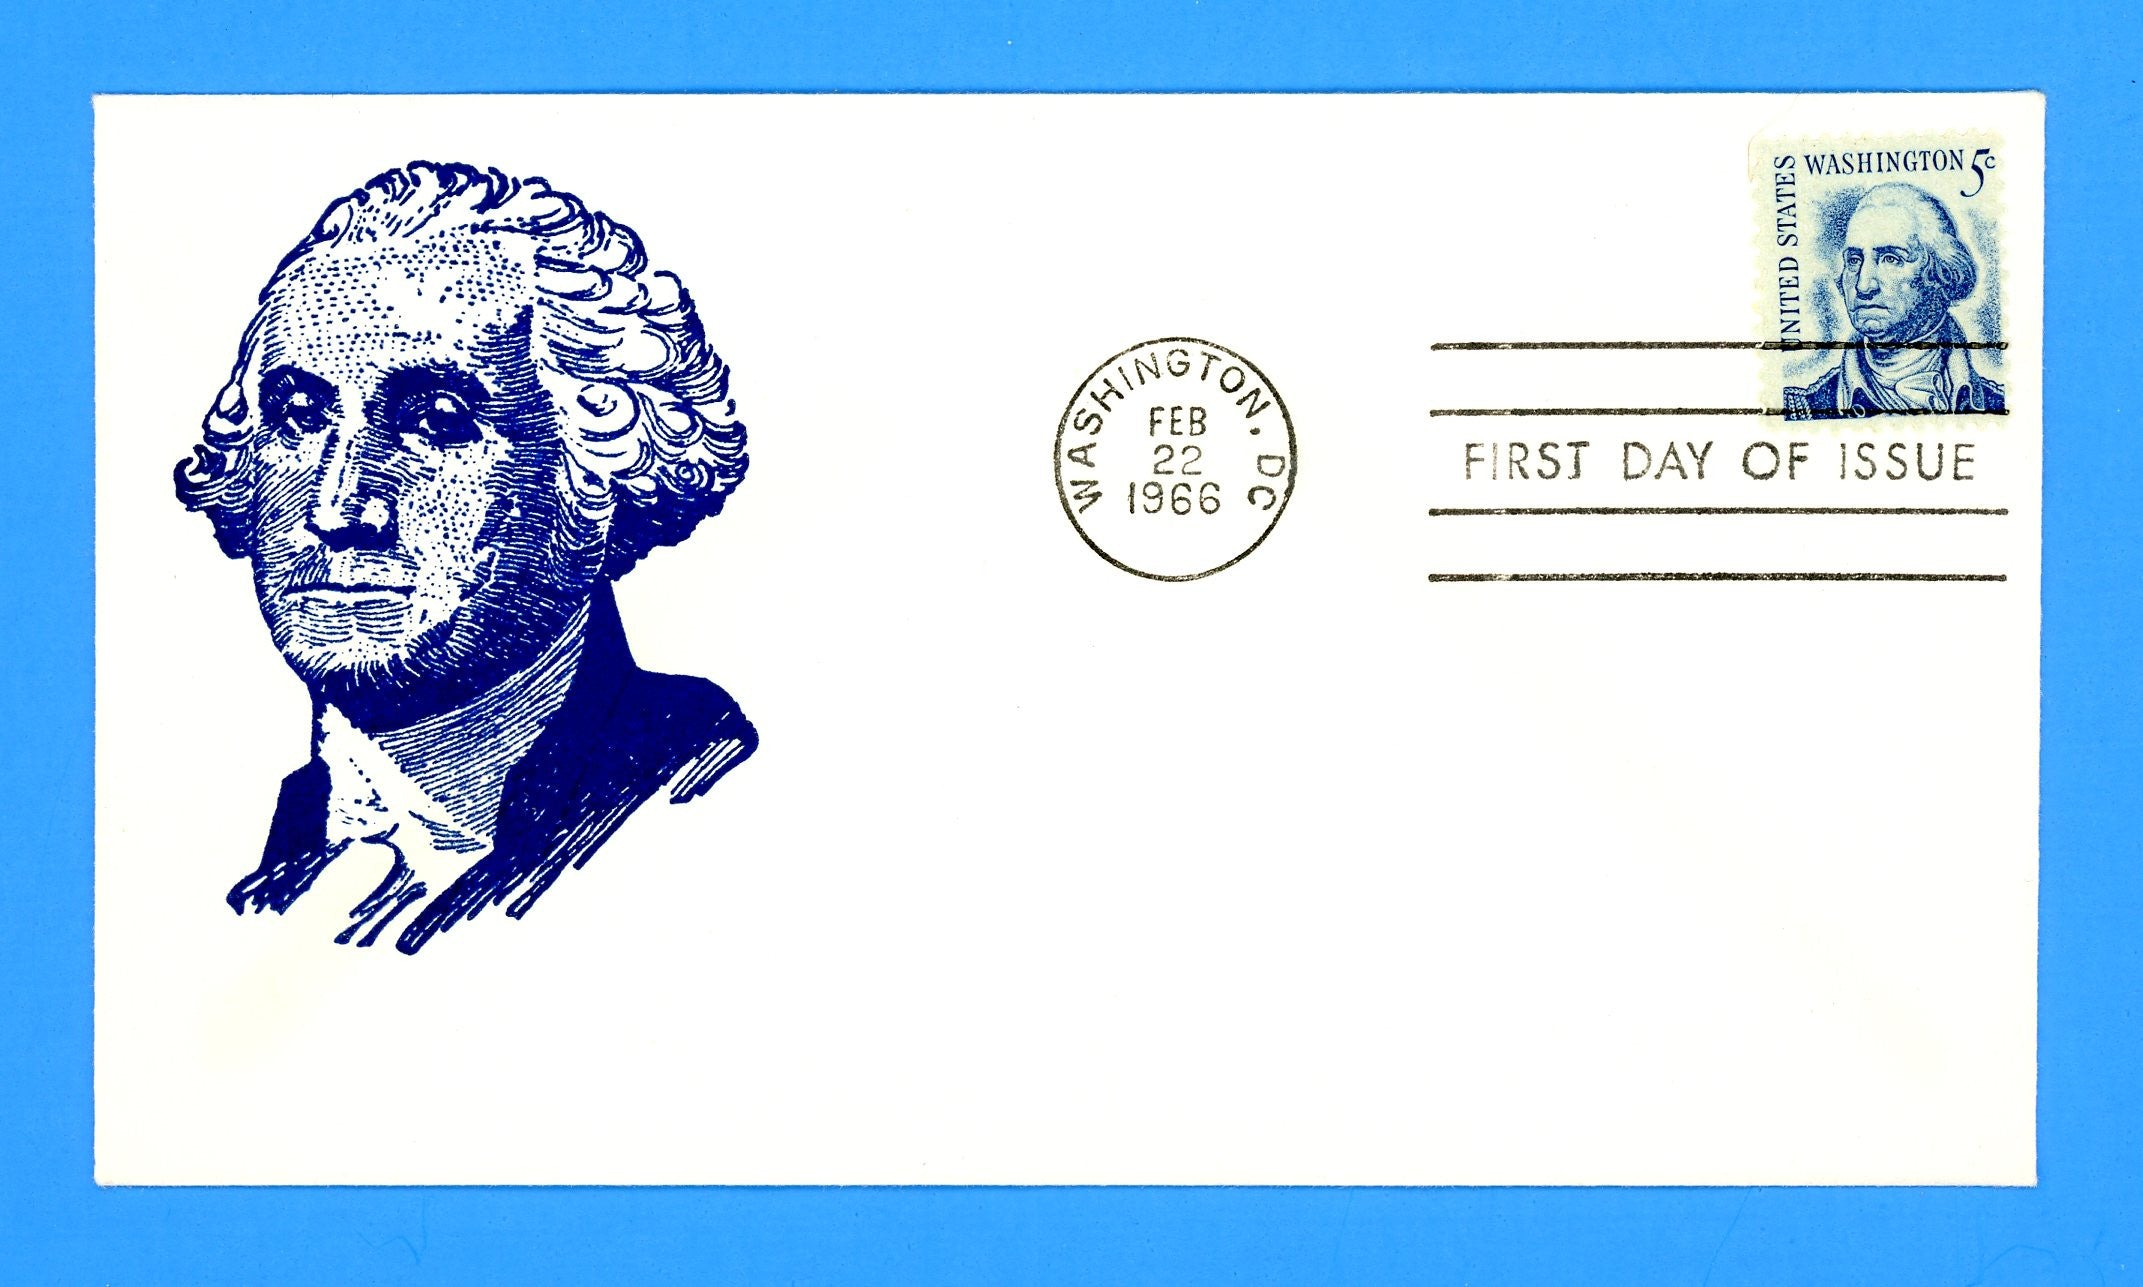 Scott 1283 5c George Washington Silk Screen First Day Cover by Eric Lewis - Very Scarce - Only Thirteen Known Copies